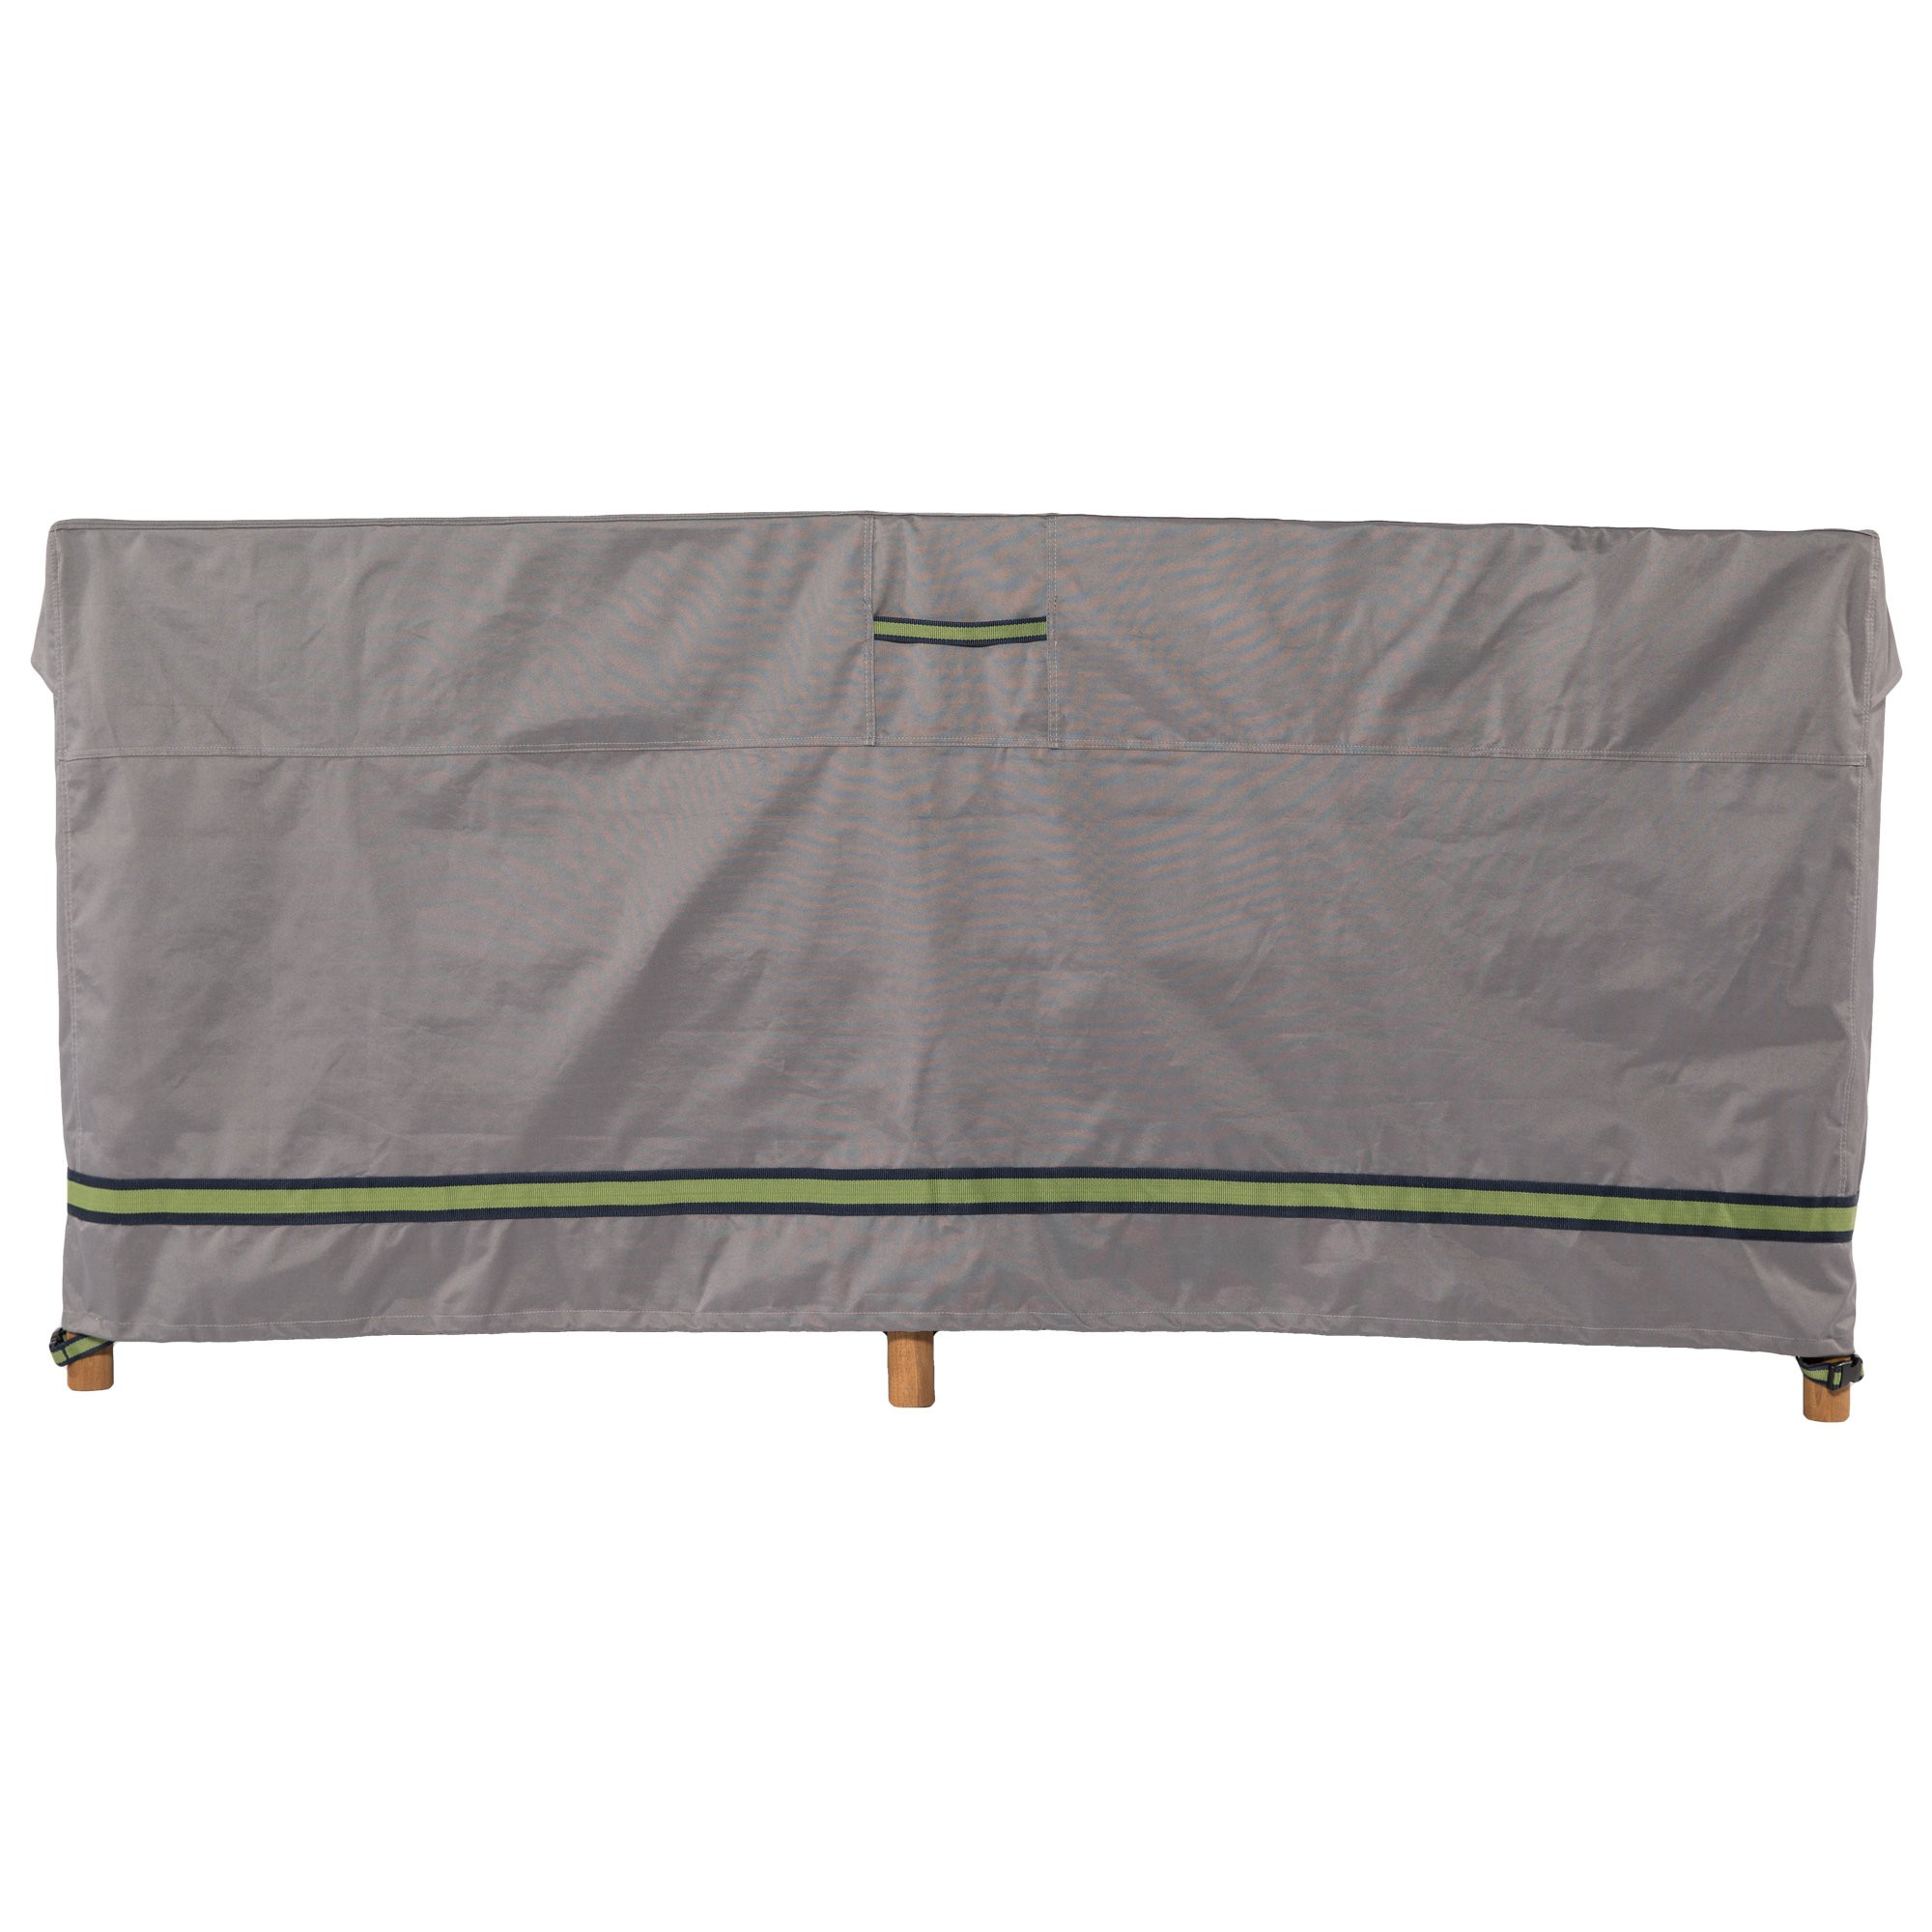 Duck Covers Soteria Rainproof 62'' Wide Patio Loveseat Cover by Duck Covers (Image #6)